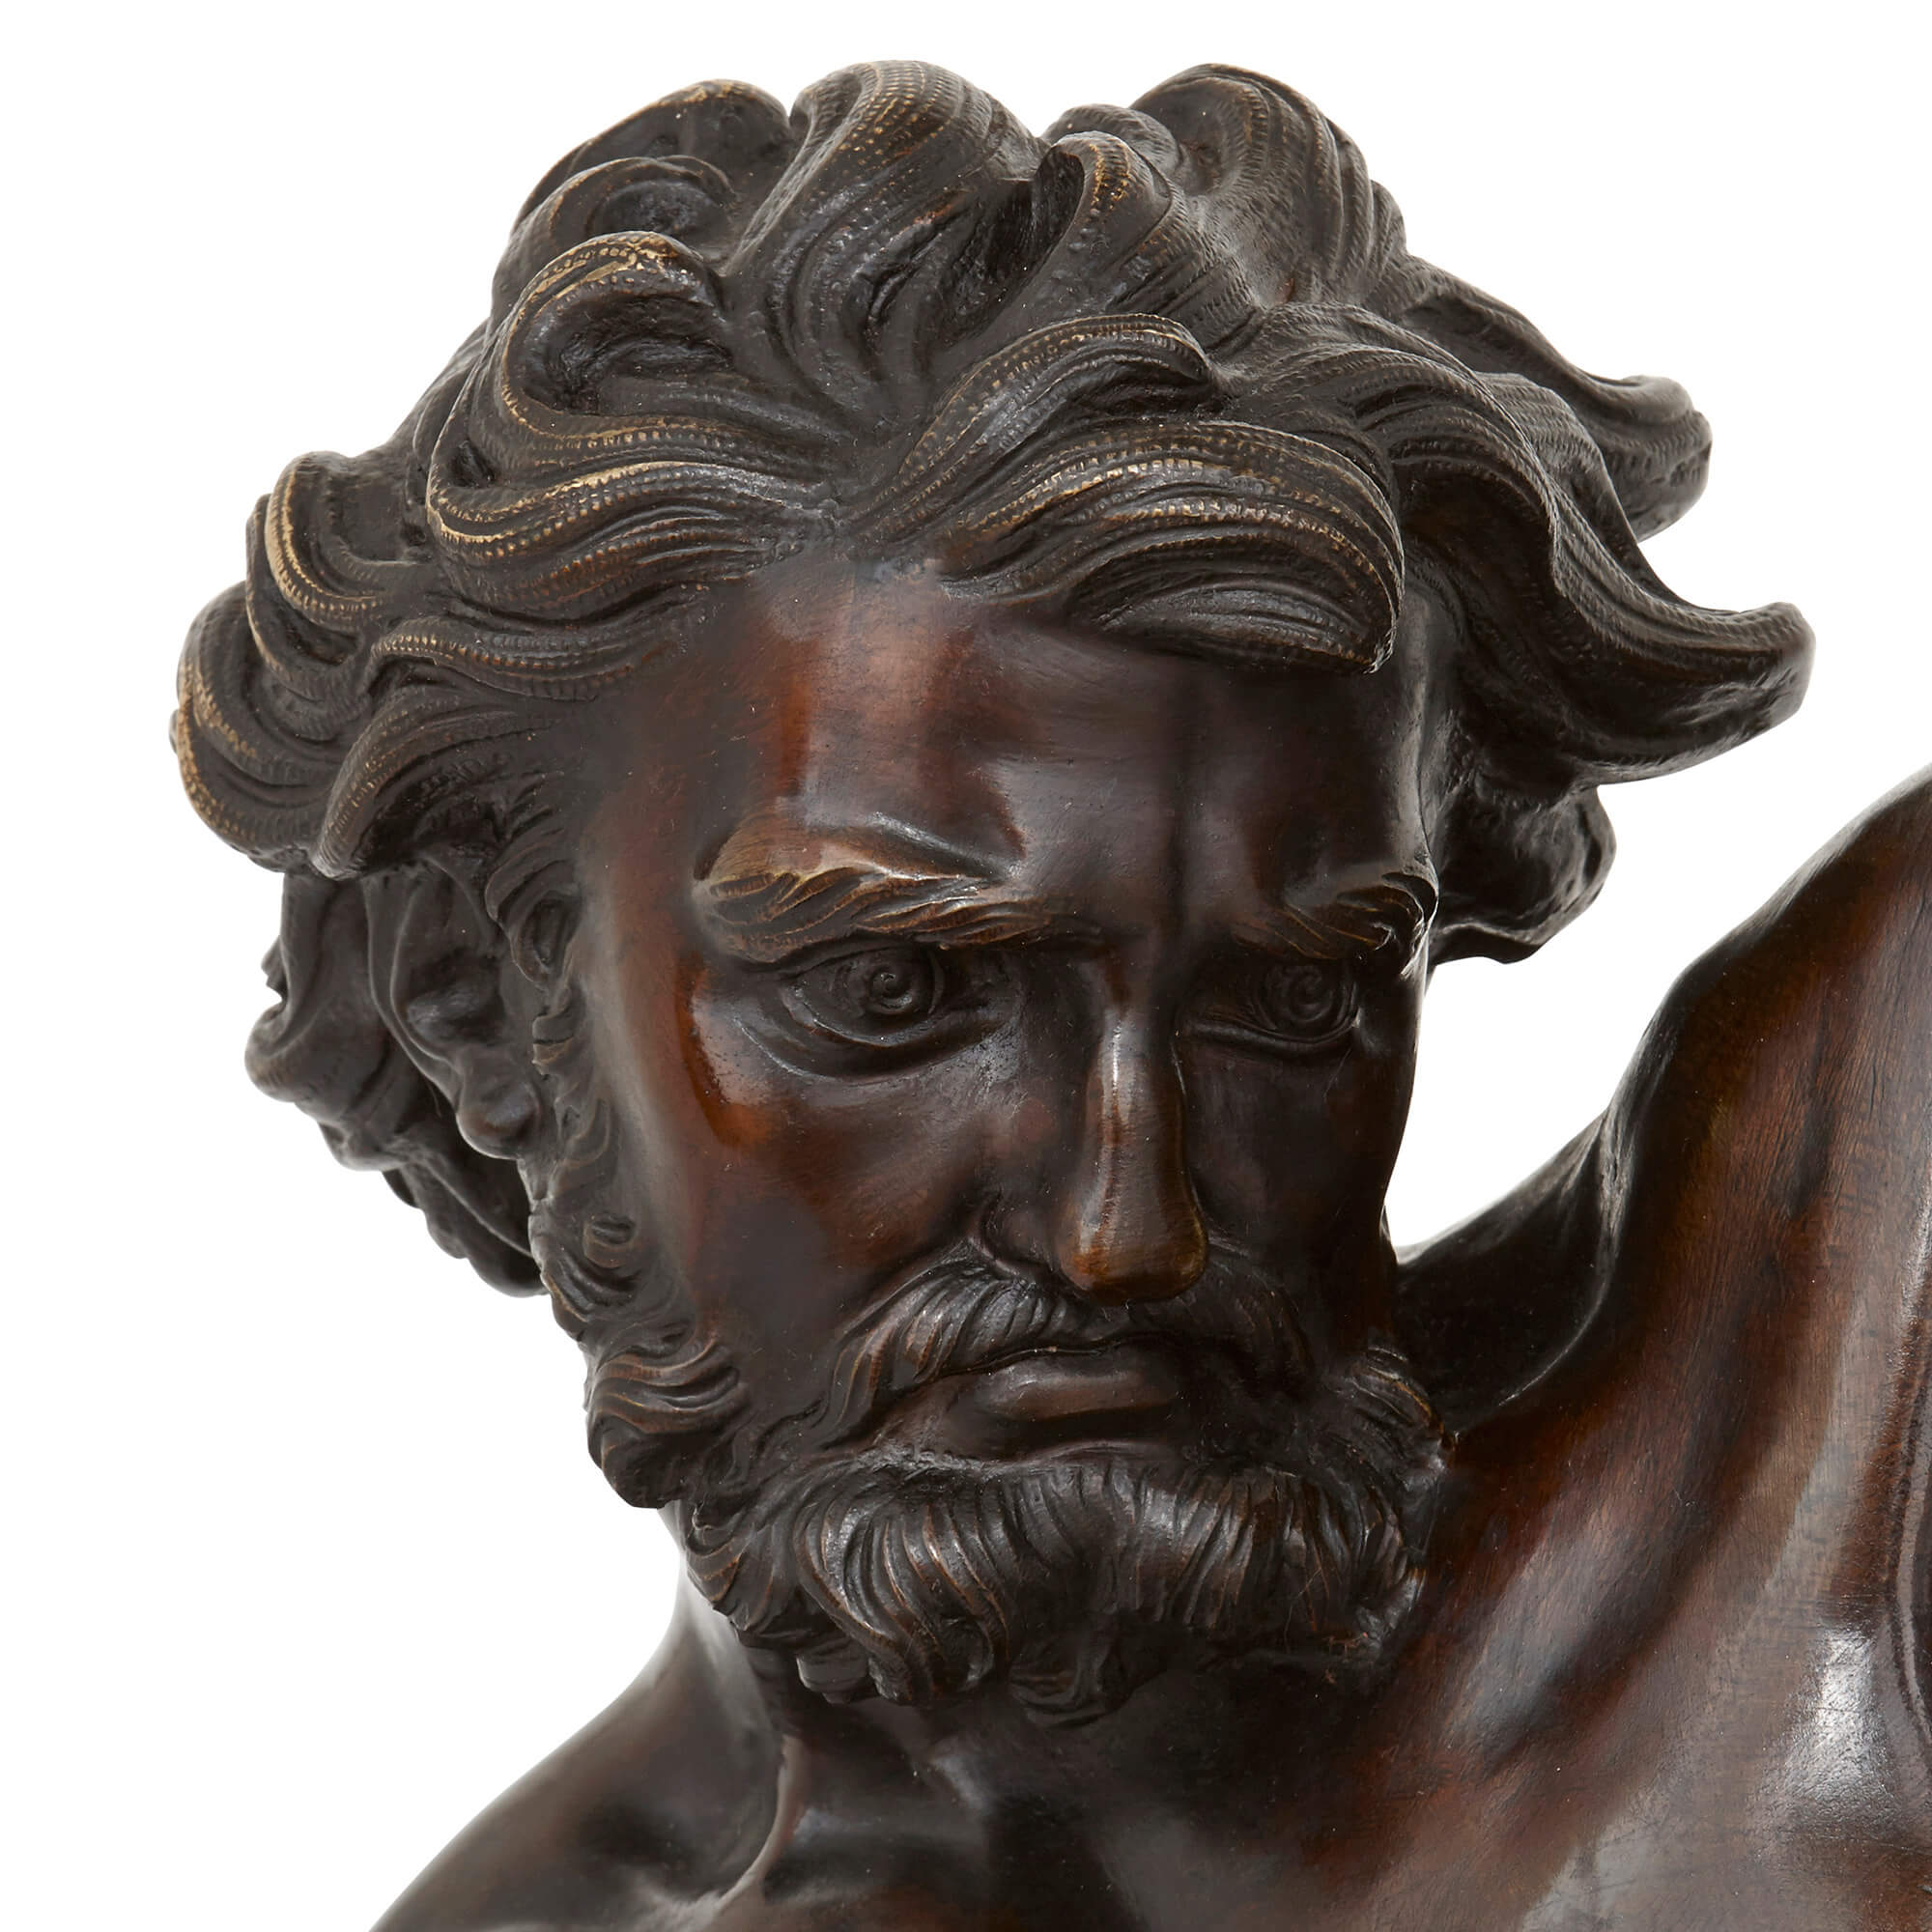 Antique French bronze figure of Ulysses after Bousseau | Mayfair Gallery